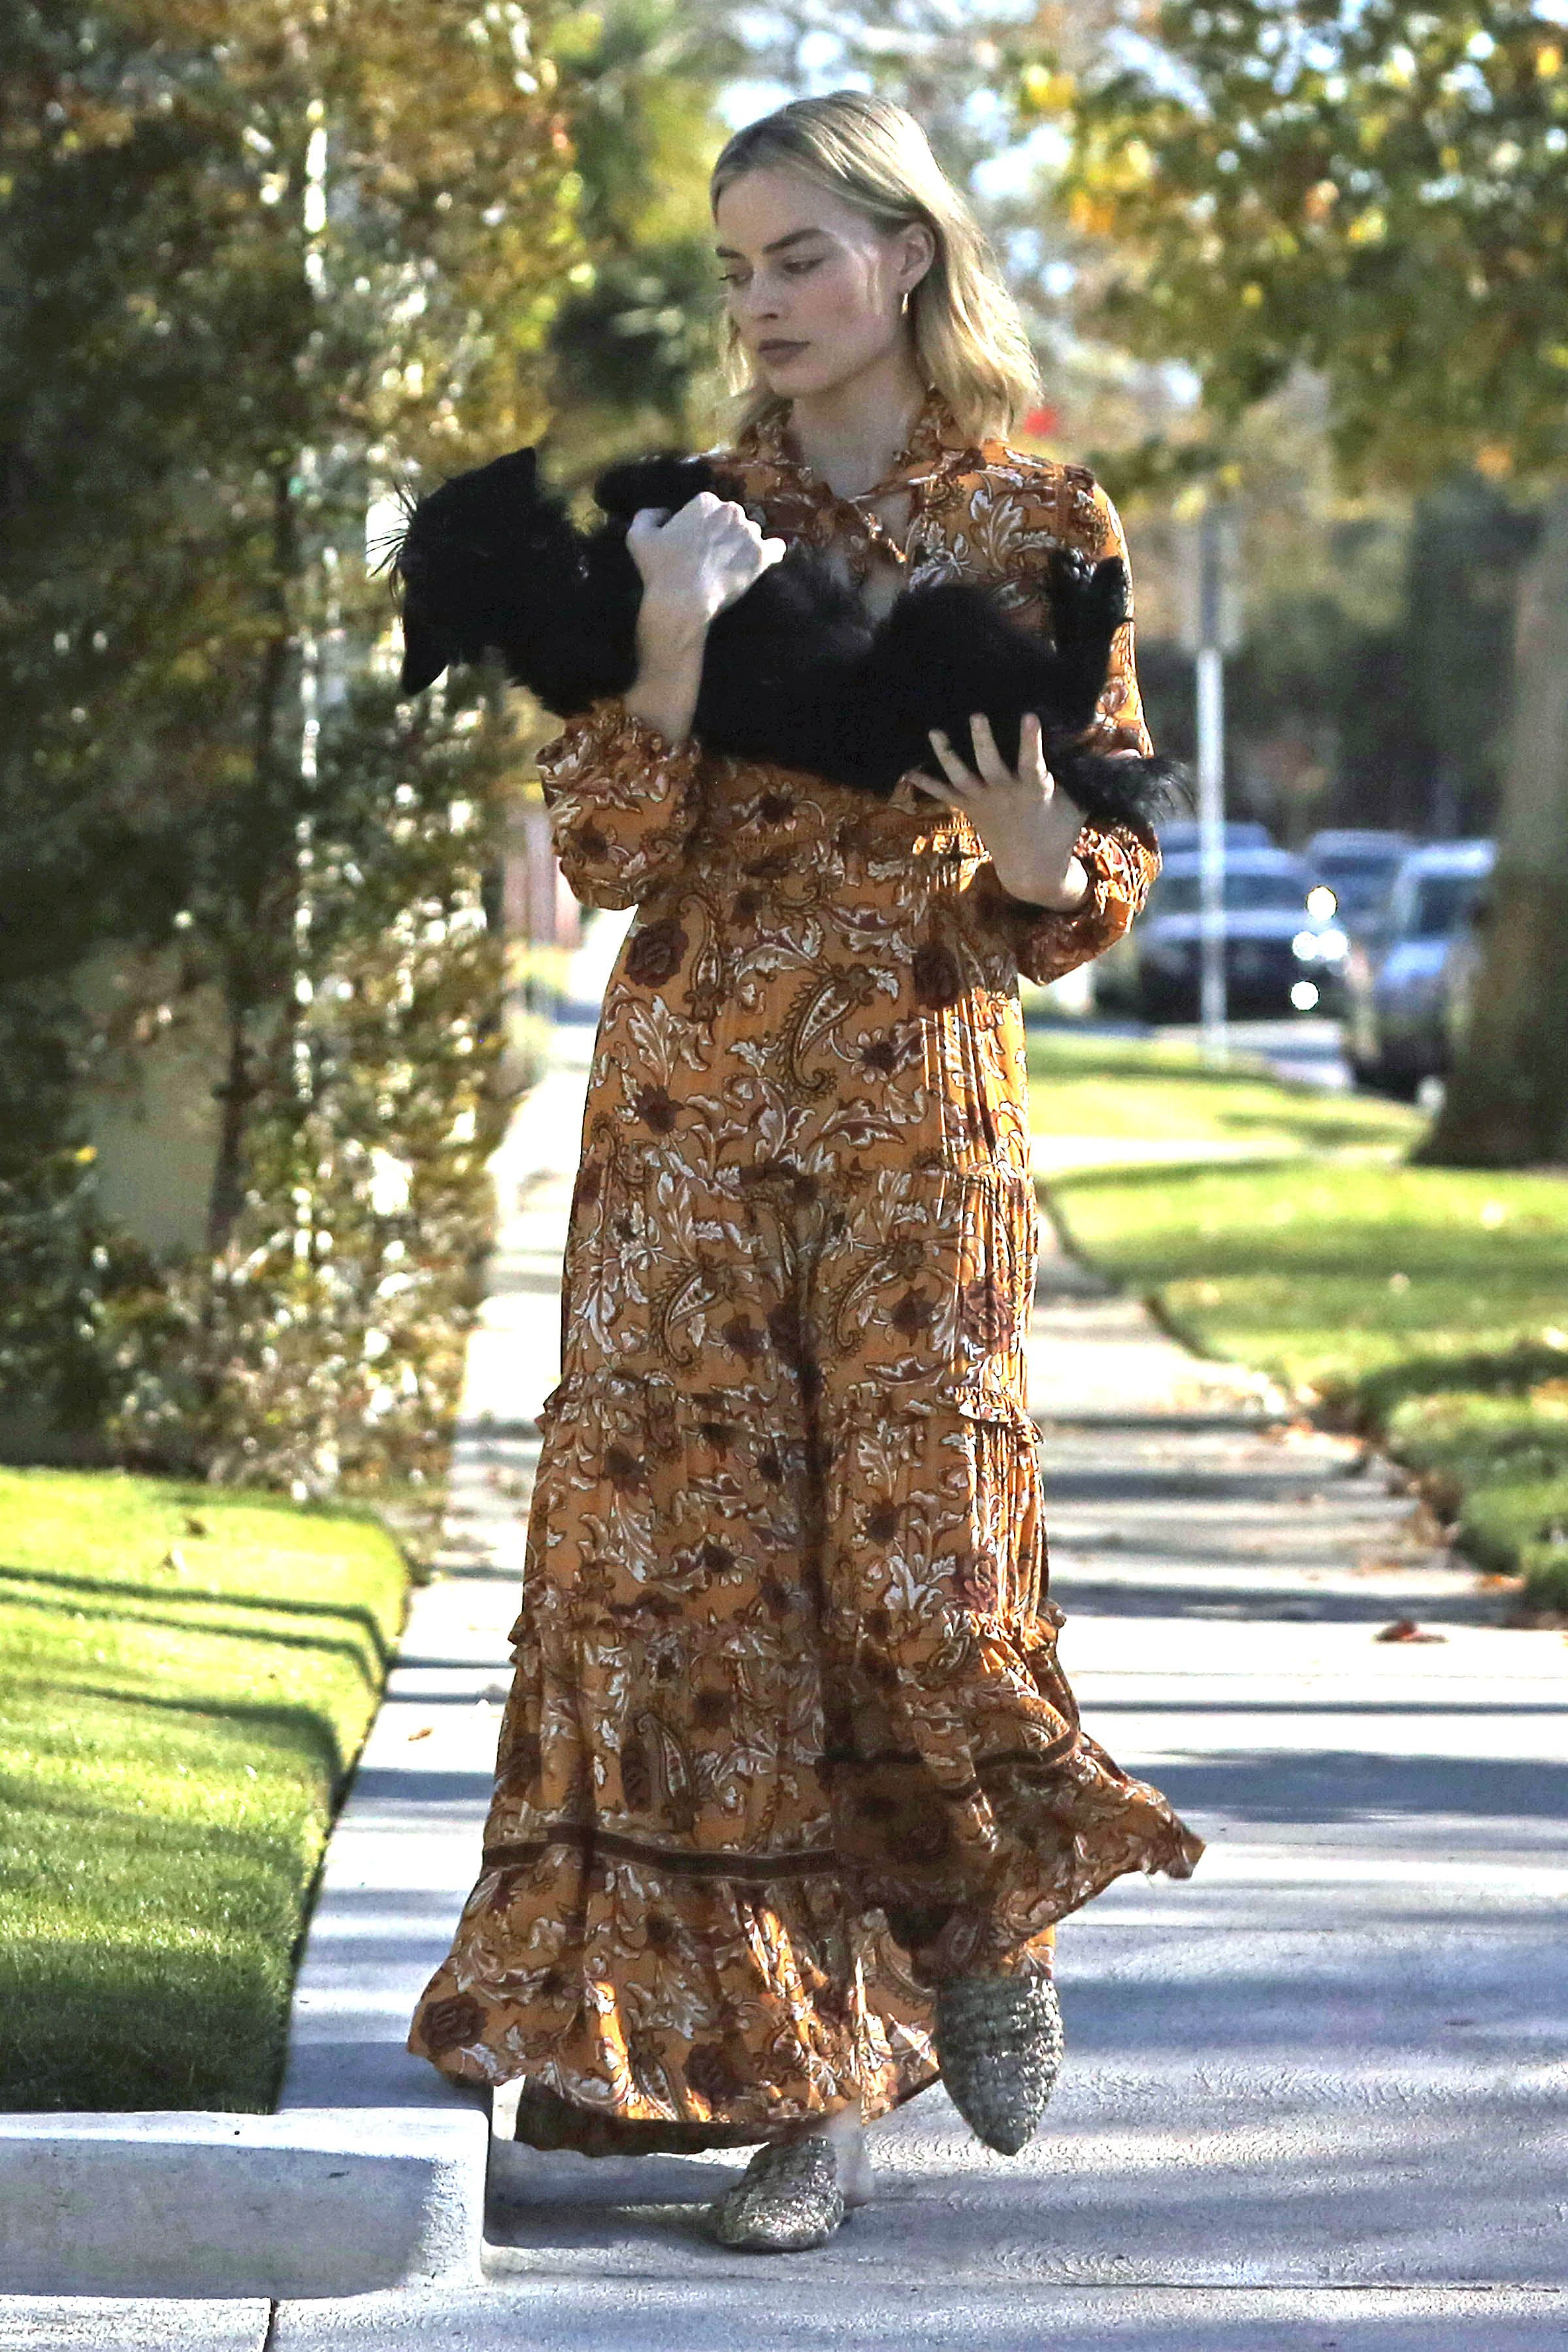 Exclusive, Los Angeles, CA - 20171211 - Margot Robbie and Tom Ackerley's Dog Get Loose in Their Neighborhood Until Tom Catches him and Takes him Back home  -PICTURED: Margot Robbie with dog -, Image: 357602696, License: Rights-managed, Restrictions: Exclusive, Model Release: no, Credit line: Profimedia, INSTAR Images